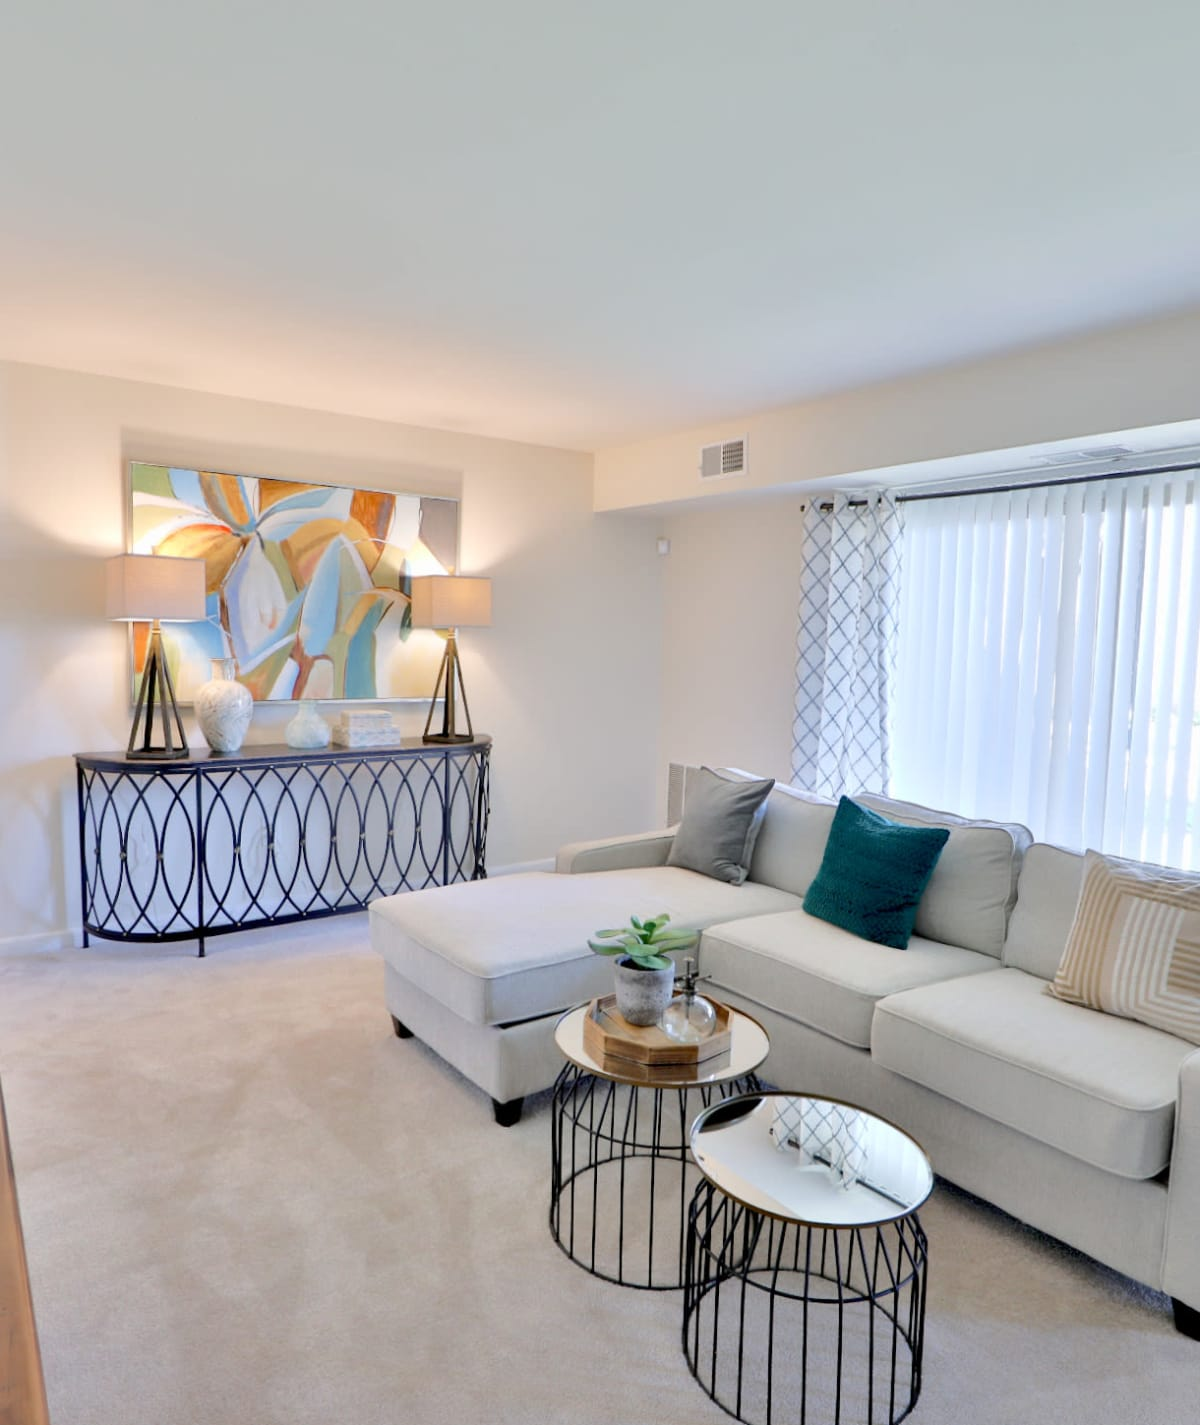 Phenomenal interior view of Gwynn Oaks Landing Apartments & Townhomes in Baltimore, MD